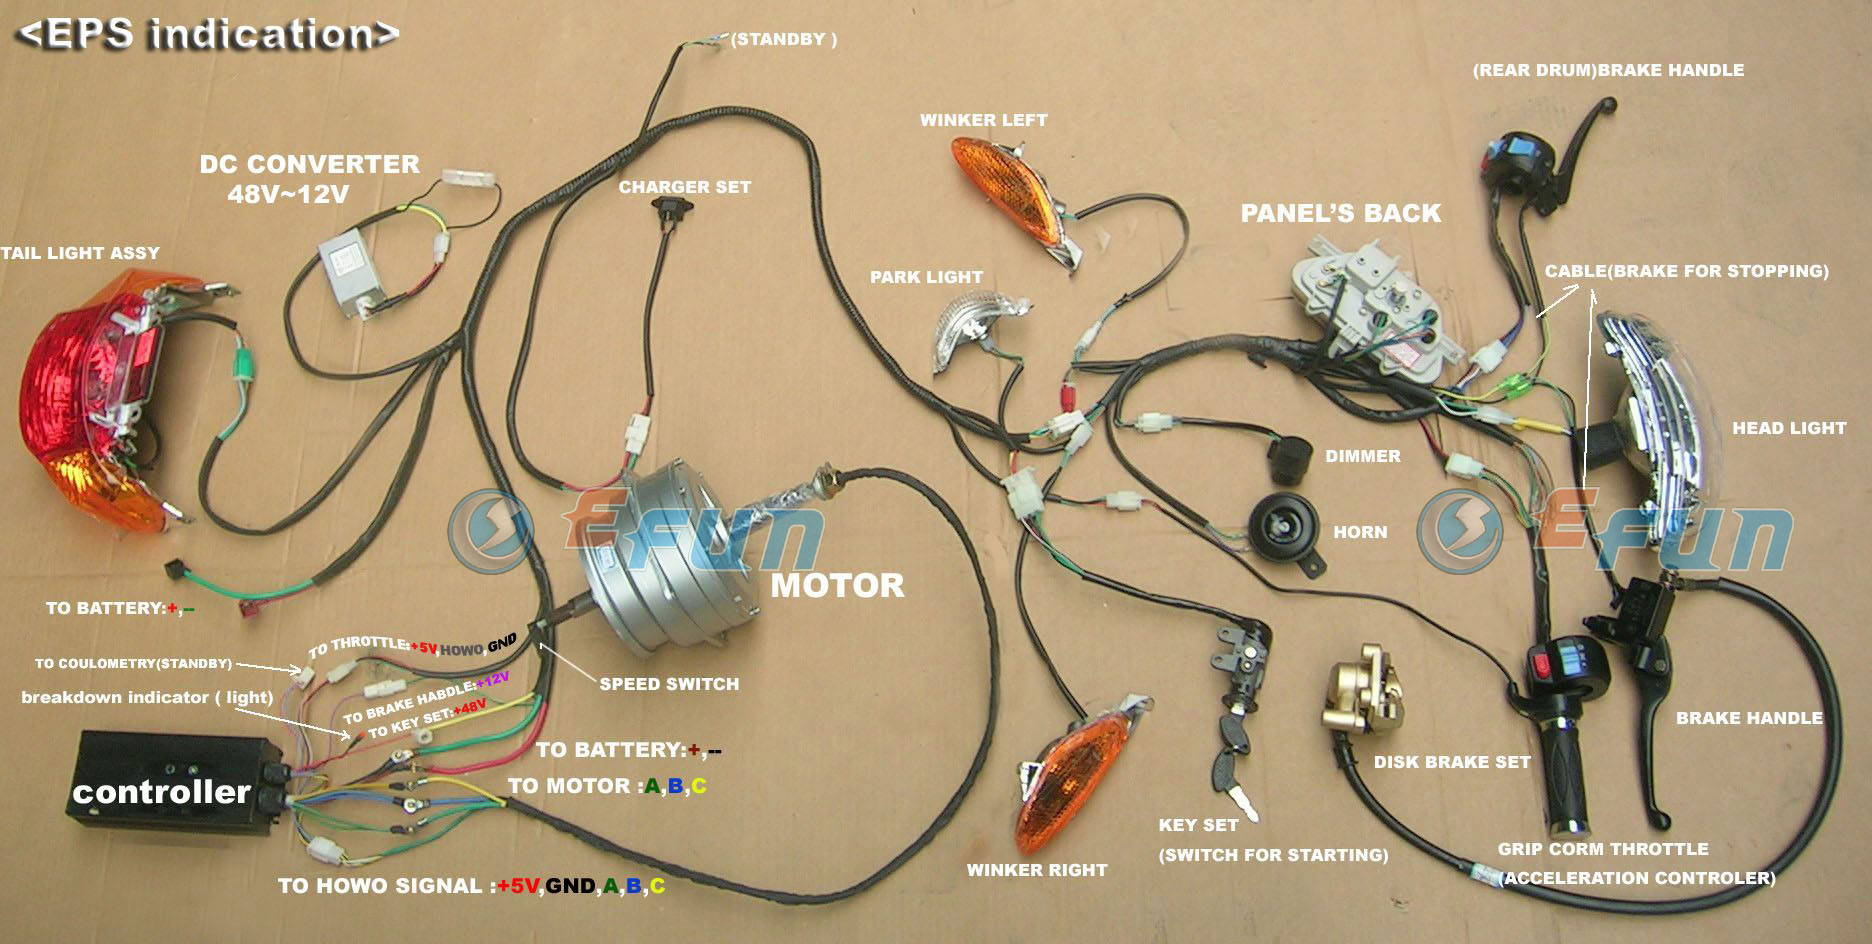 Harley Ignition Diagram For Dummies together with 1972 Ford Ranchero Wiring Diagram together with Honda Cb350 Wiring Diagrams together with 2013 Triumph Bonneville T100 Cafe Racer Conversion as well Read. on triumph wiring harness